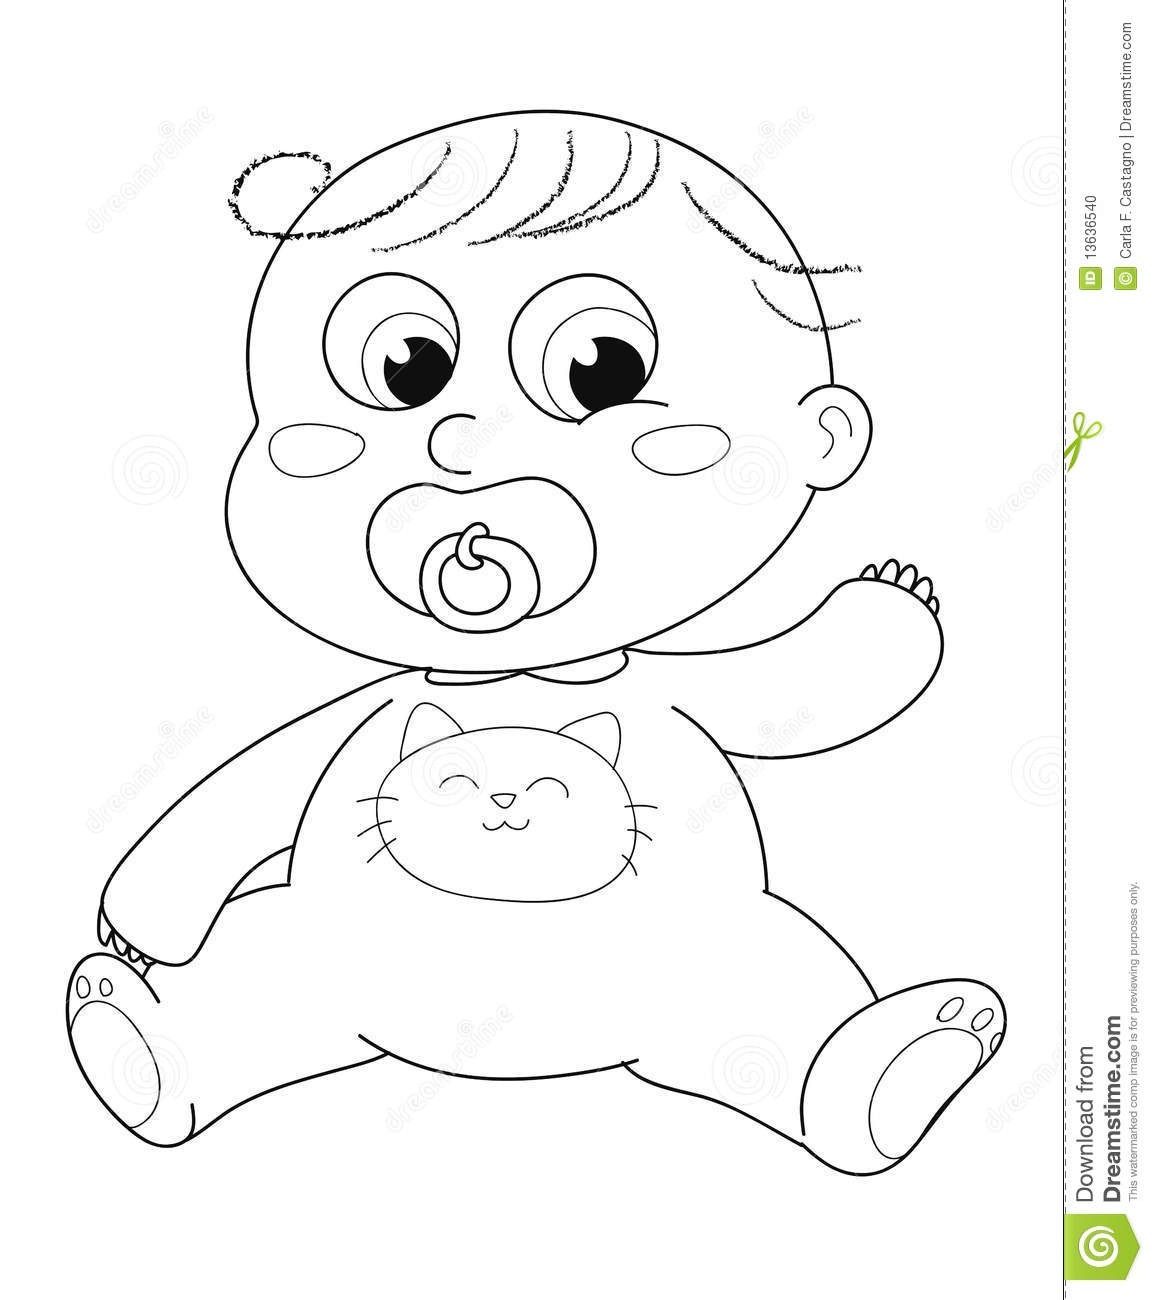 cute newborn baby baby coloring pages cute baby coloring stock vector image of babe babies baby coloring pages baby newborn cute